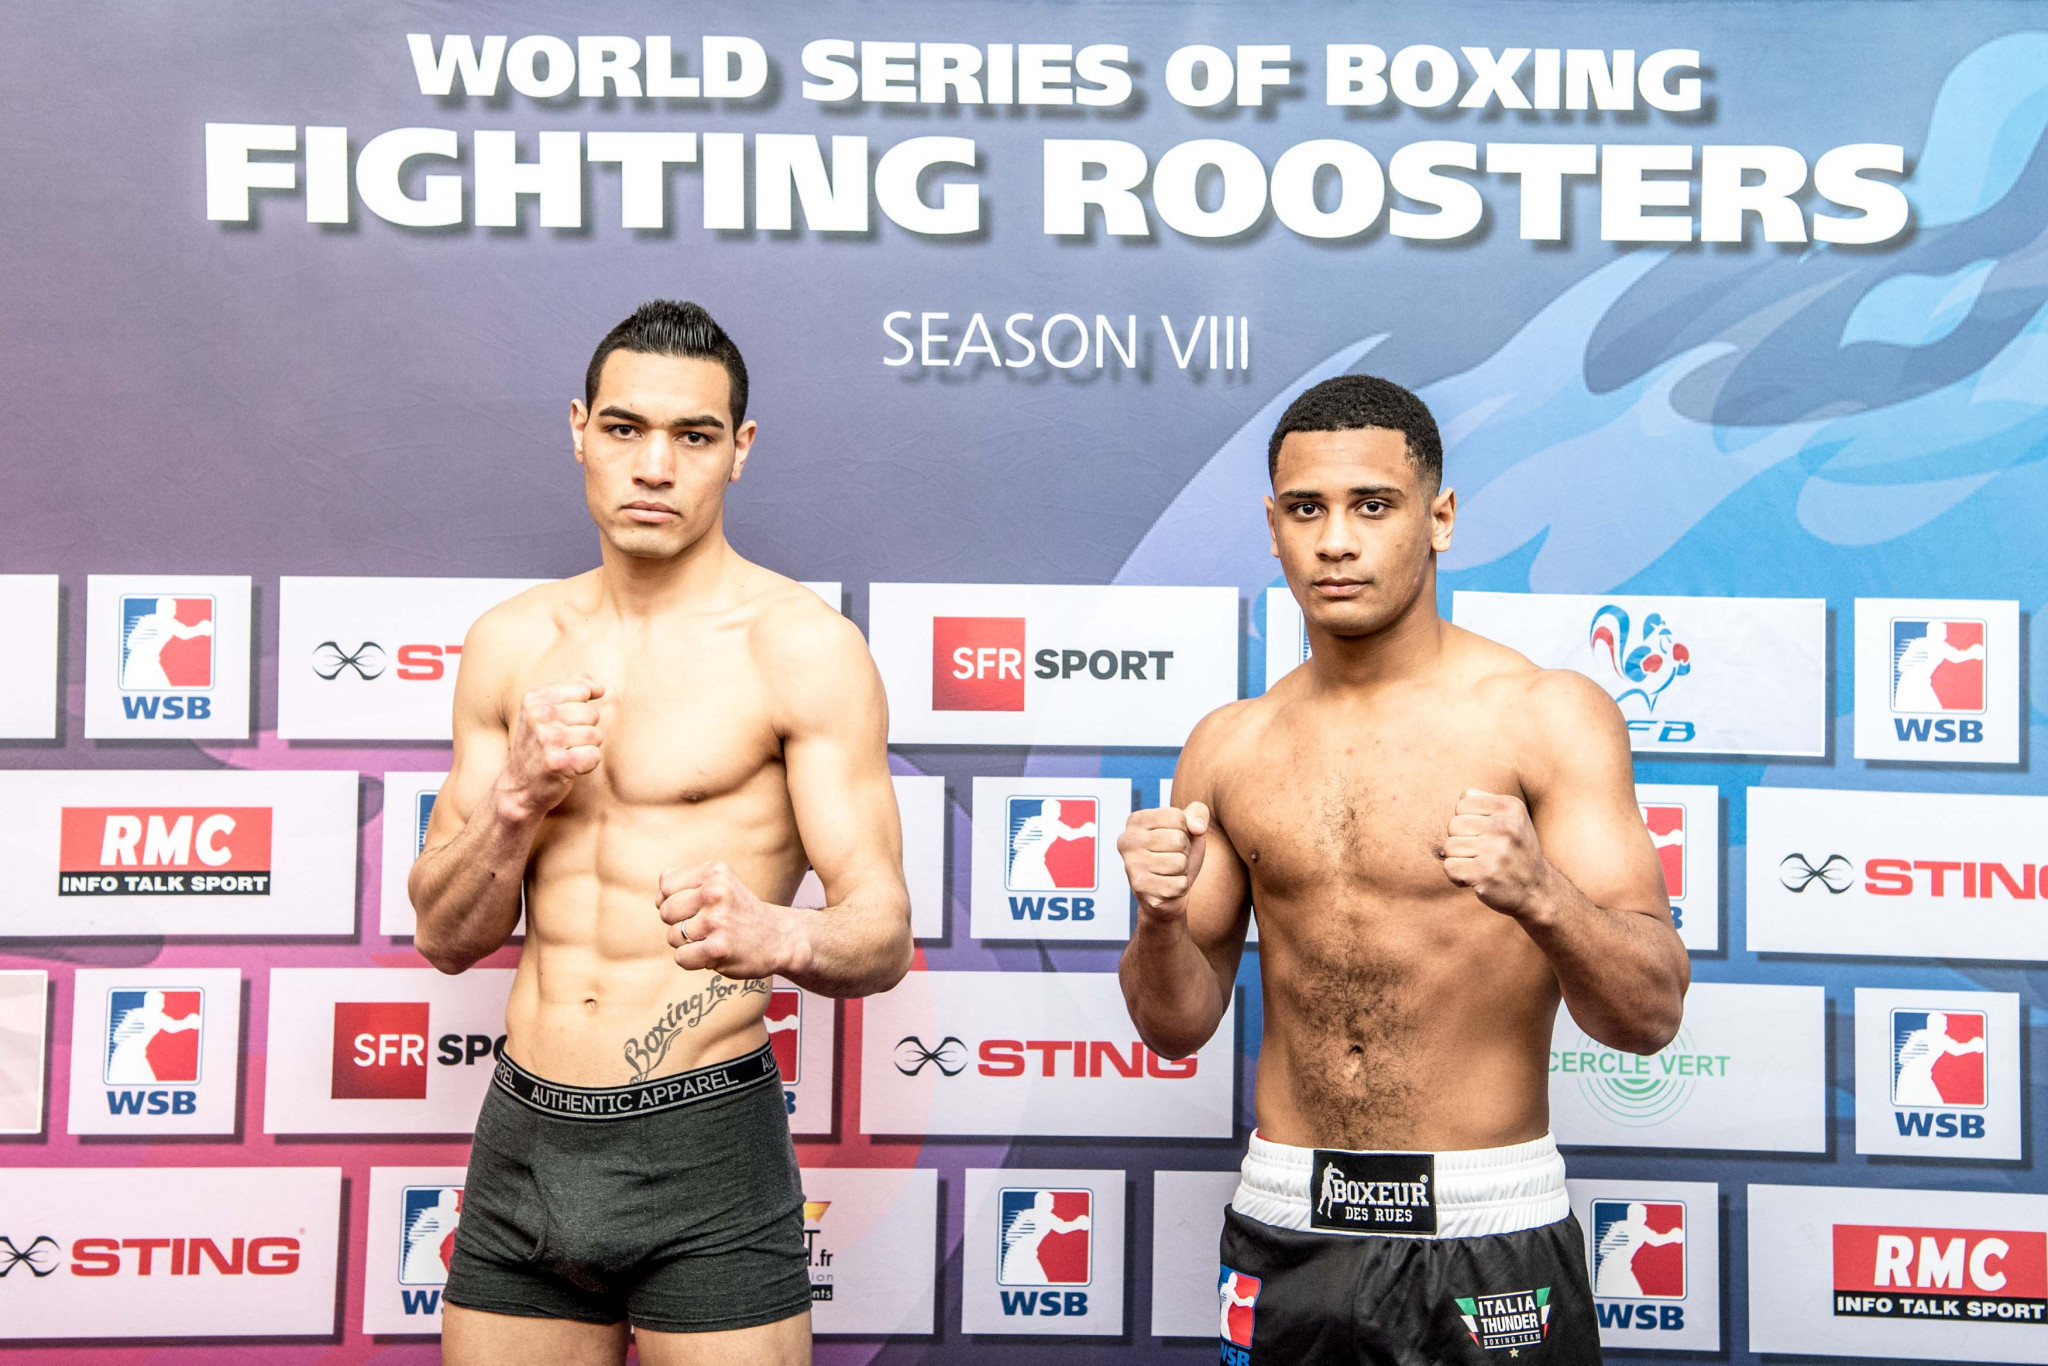 France Fighting Roosters look to consolidate place at top of World Series of Boxing group